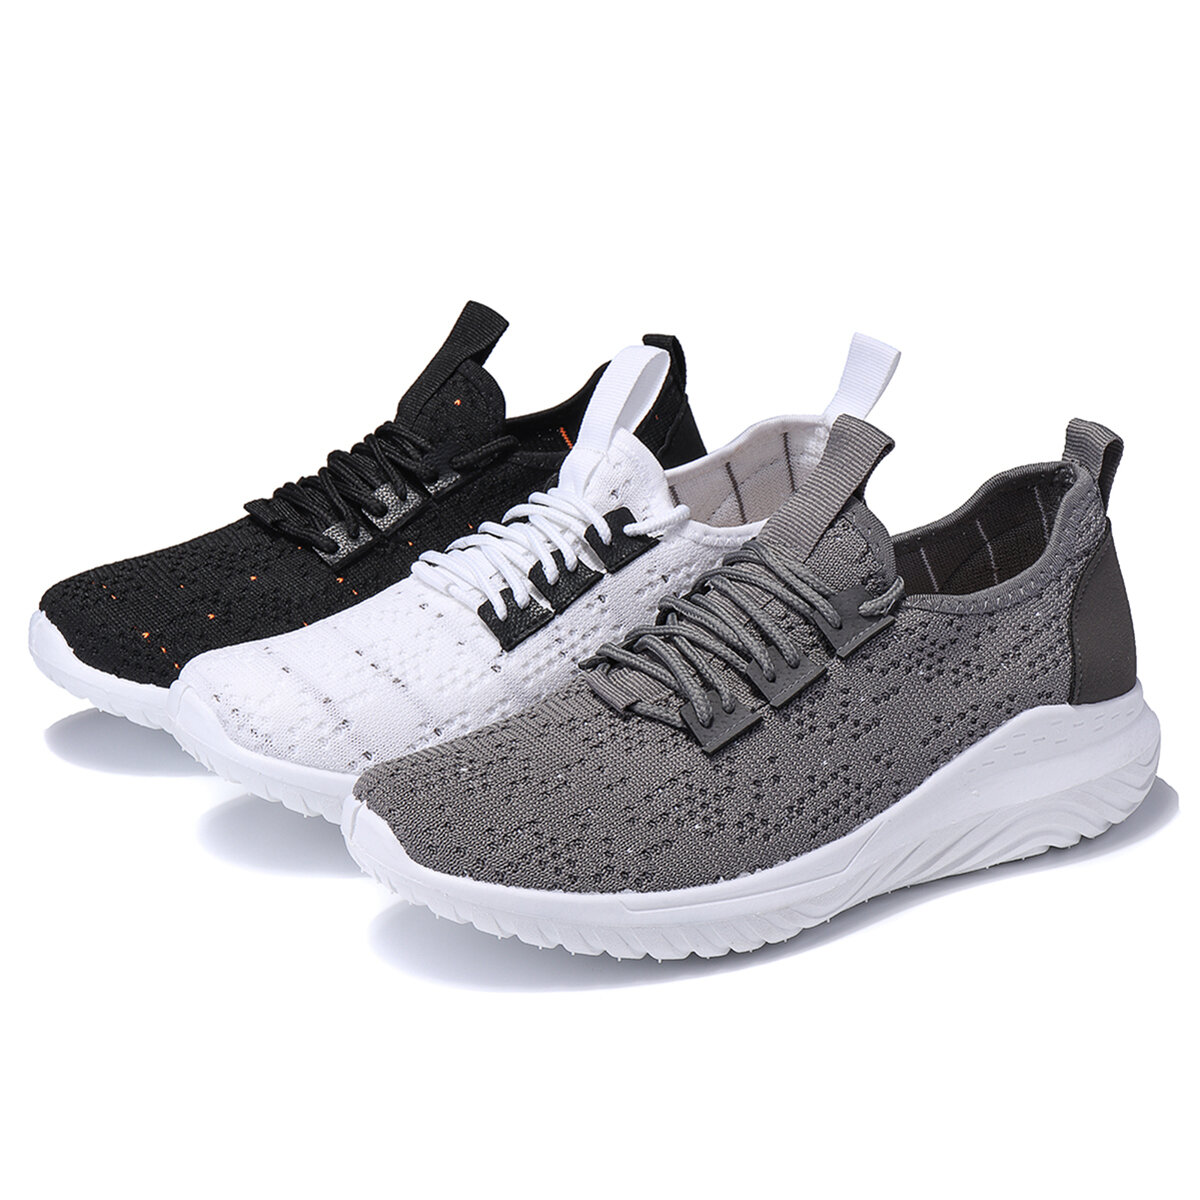 Men's Super Ultralight Sneakers Mesh Breathable Fly Weave Outdoor Sports Casual Shoes